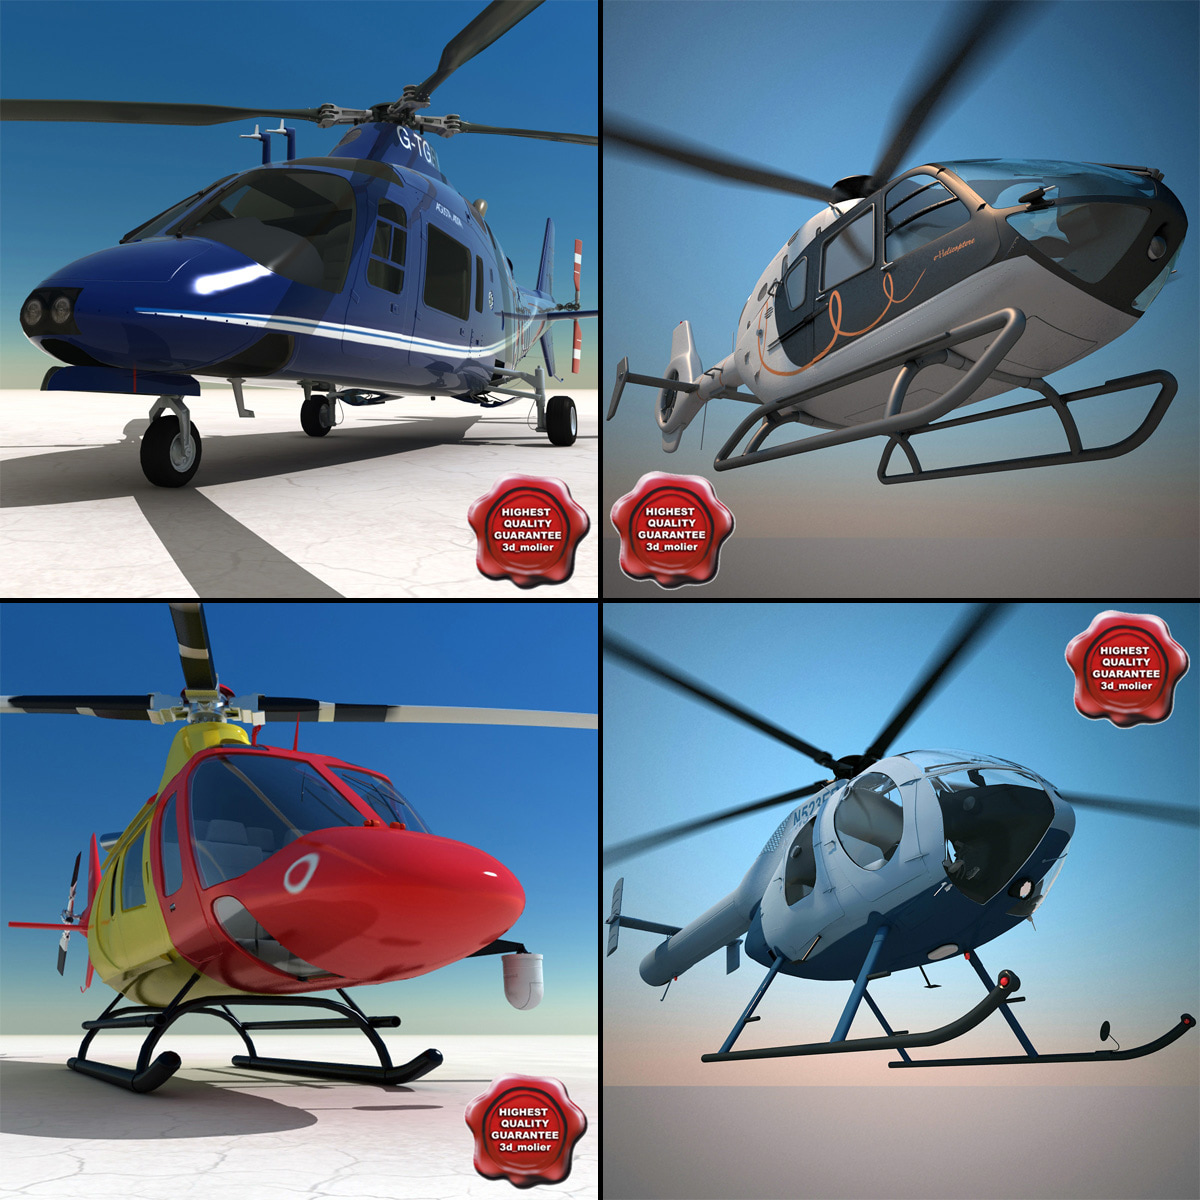 Private_Helicopters_Collection_000.jpg